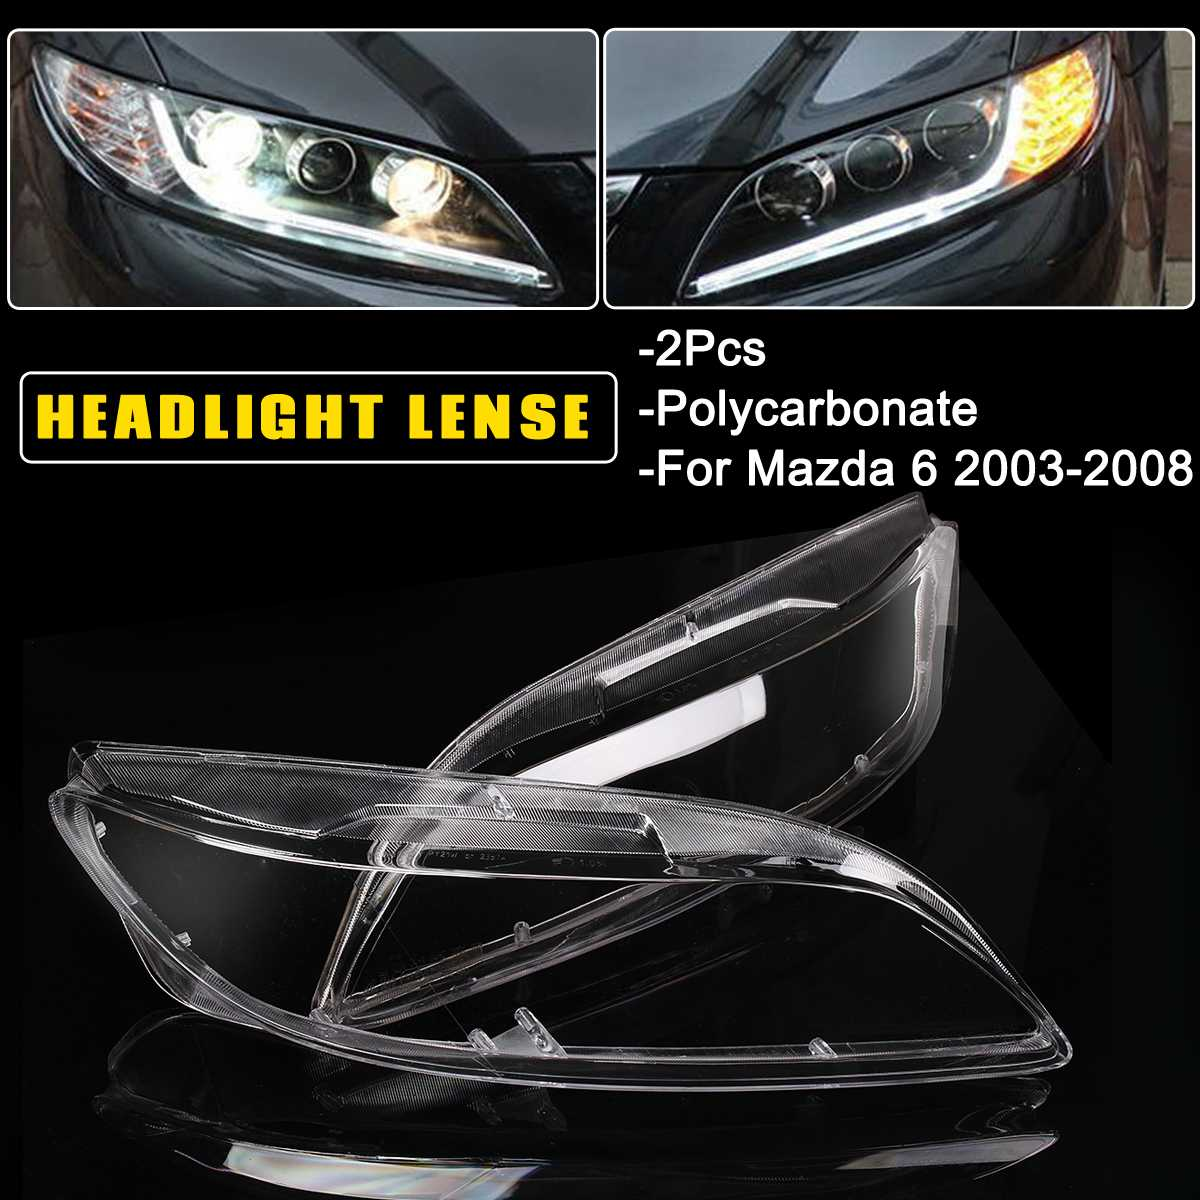 Autoleader 1 Pair For Mazda 6 2003-2008 Car Headlight Headlamp Plastic Clear Shell Lamp Cover Replacement  Lens Cover 60cmx6cmAutoleader 1 Pair For Mazda 6 2003-2008 Car Headlight Headlamp Plastic Clear Shell Lamp Cover Replacement  Lens Cover 60cmx6cm